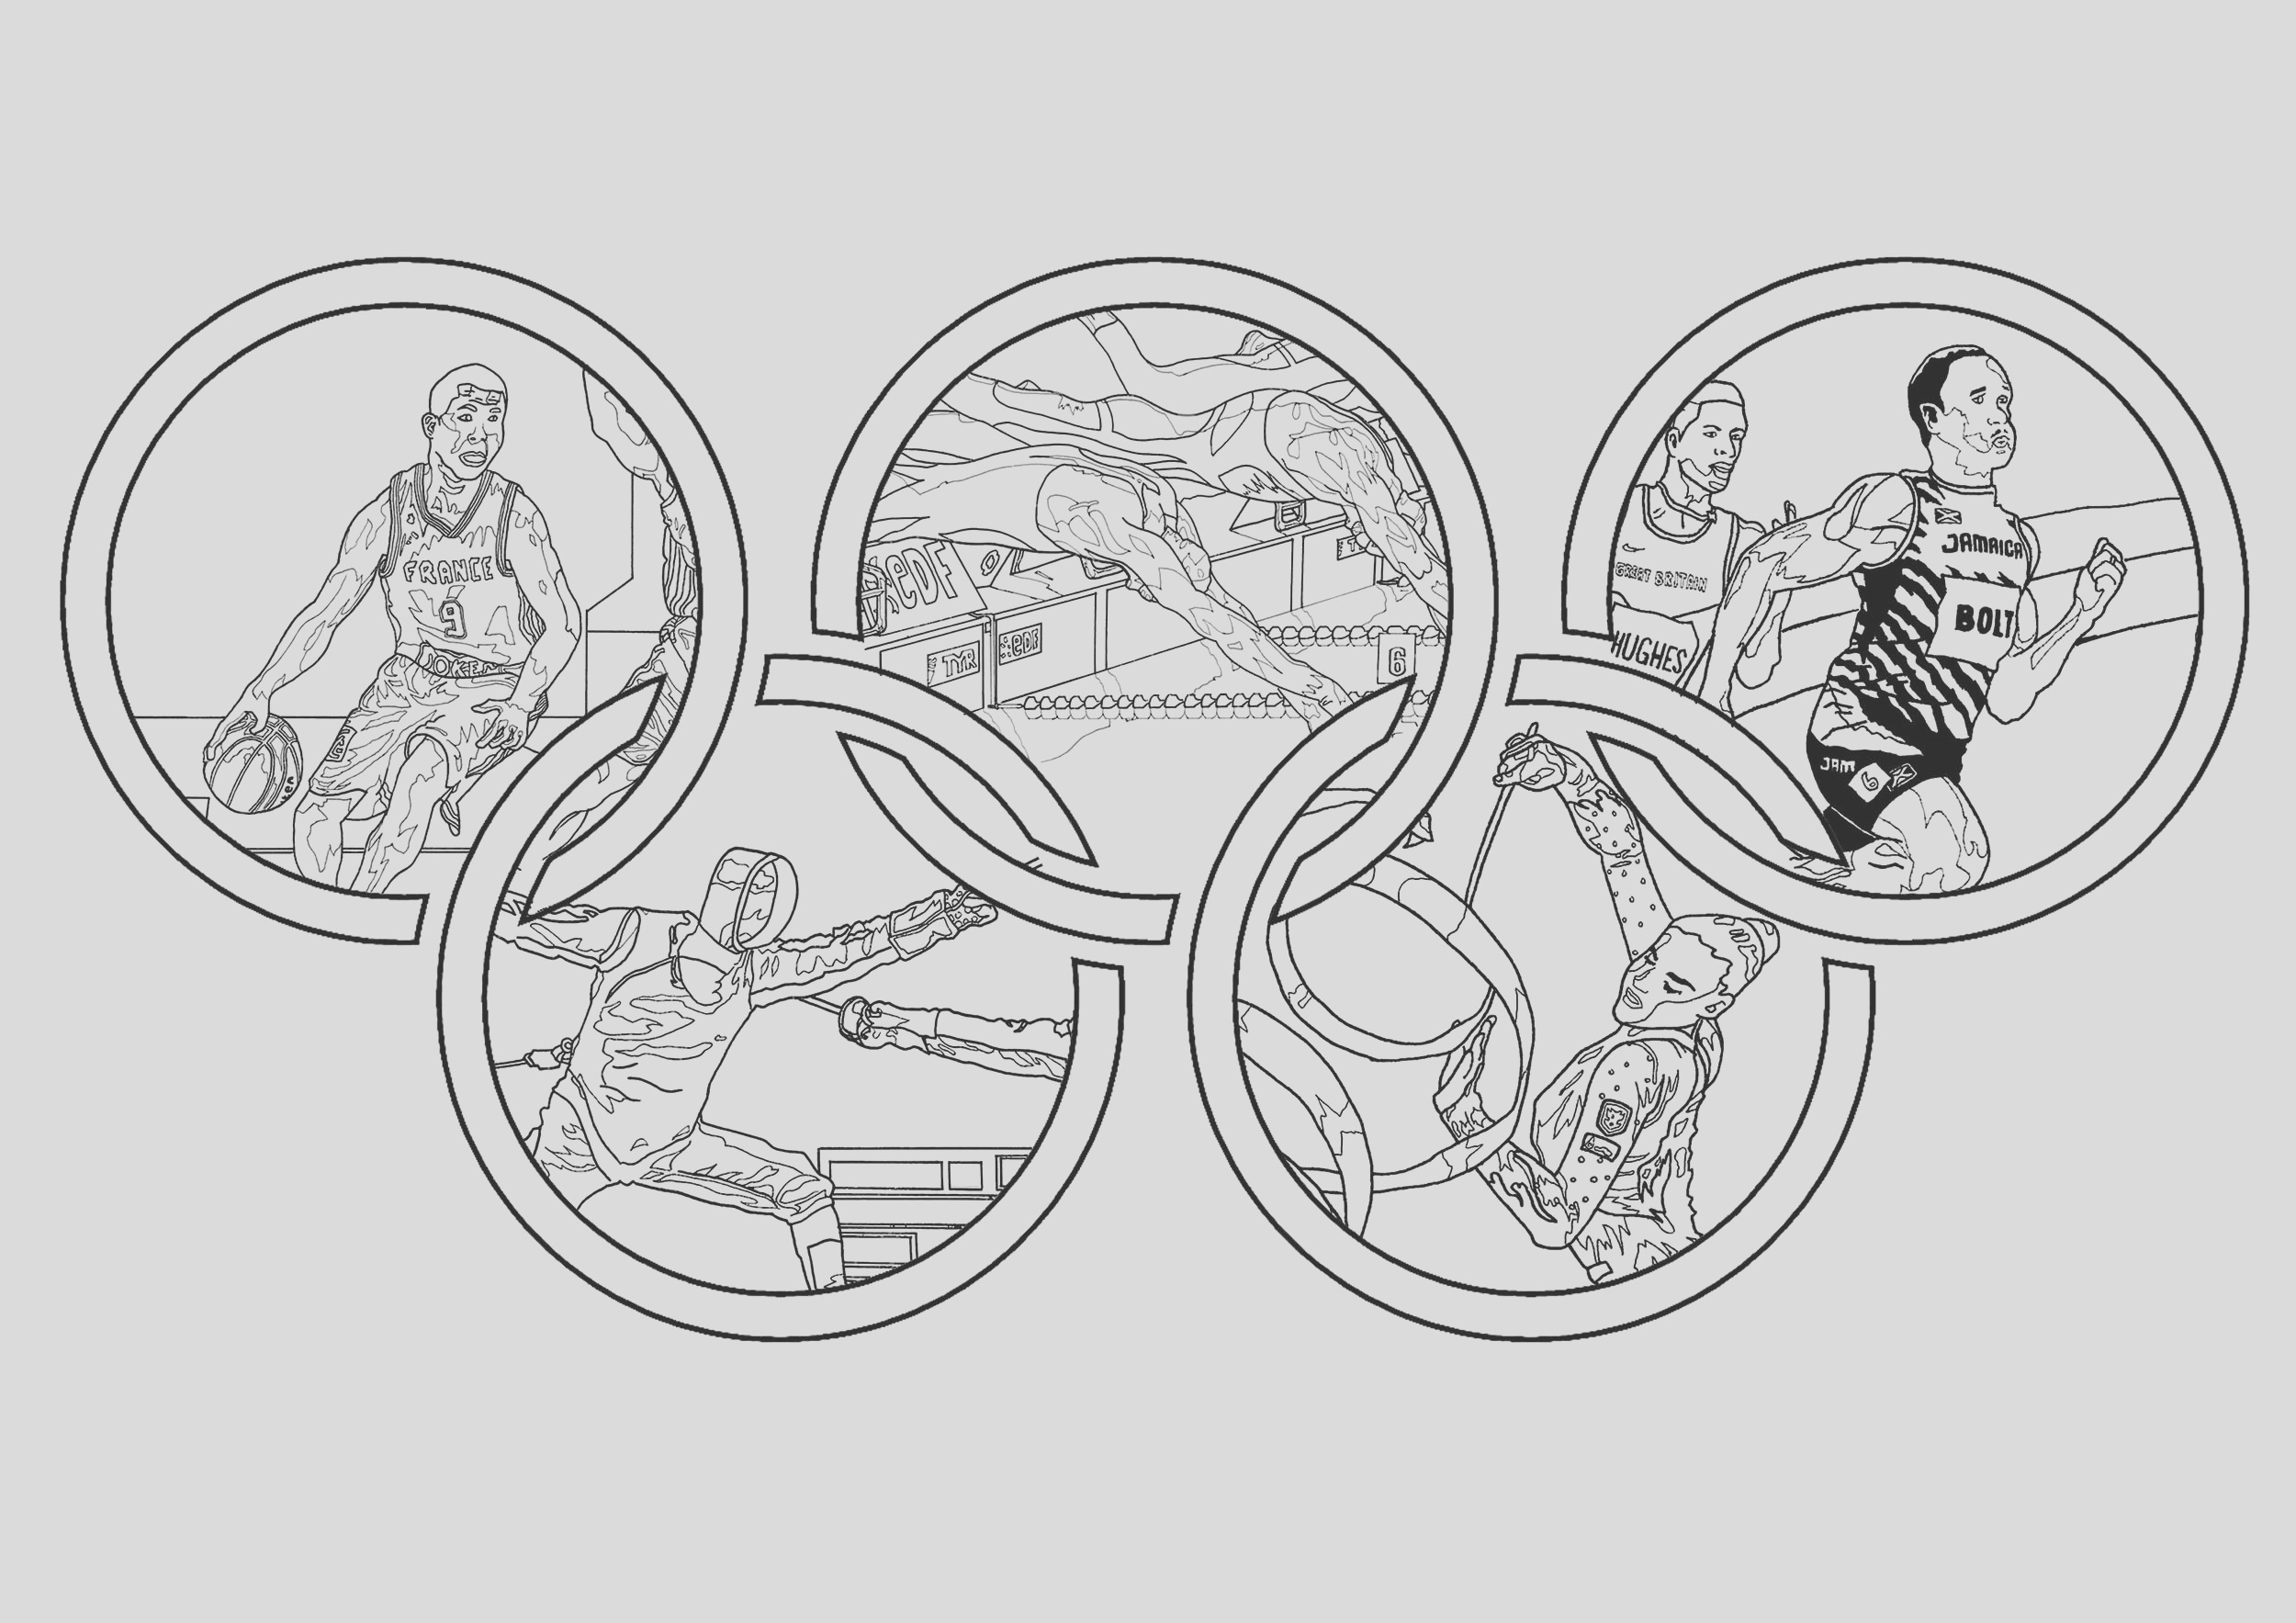 image=events olympics coloring adult olympic games 1